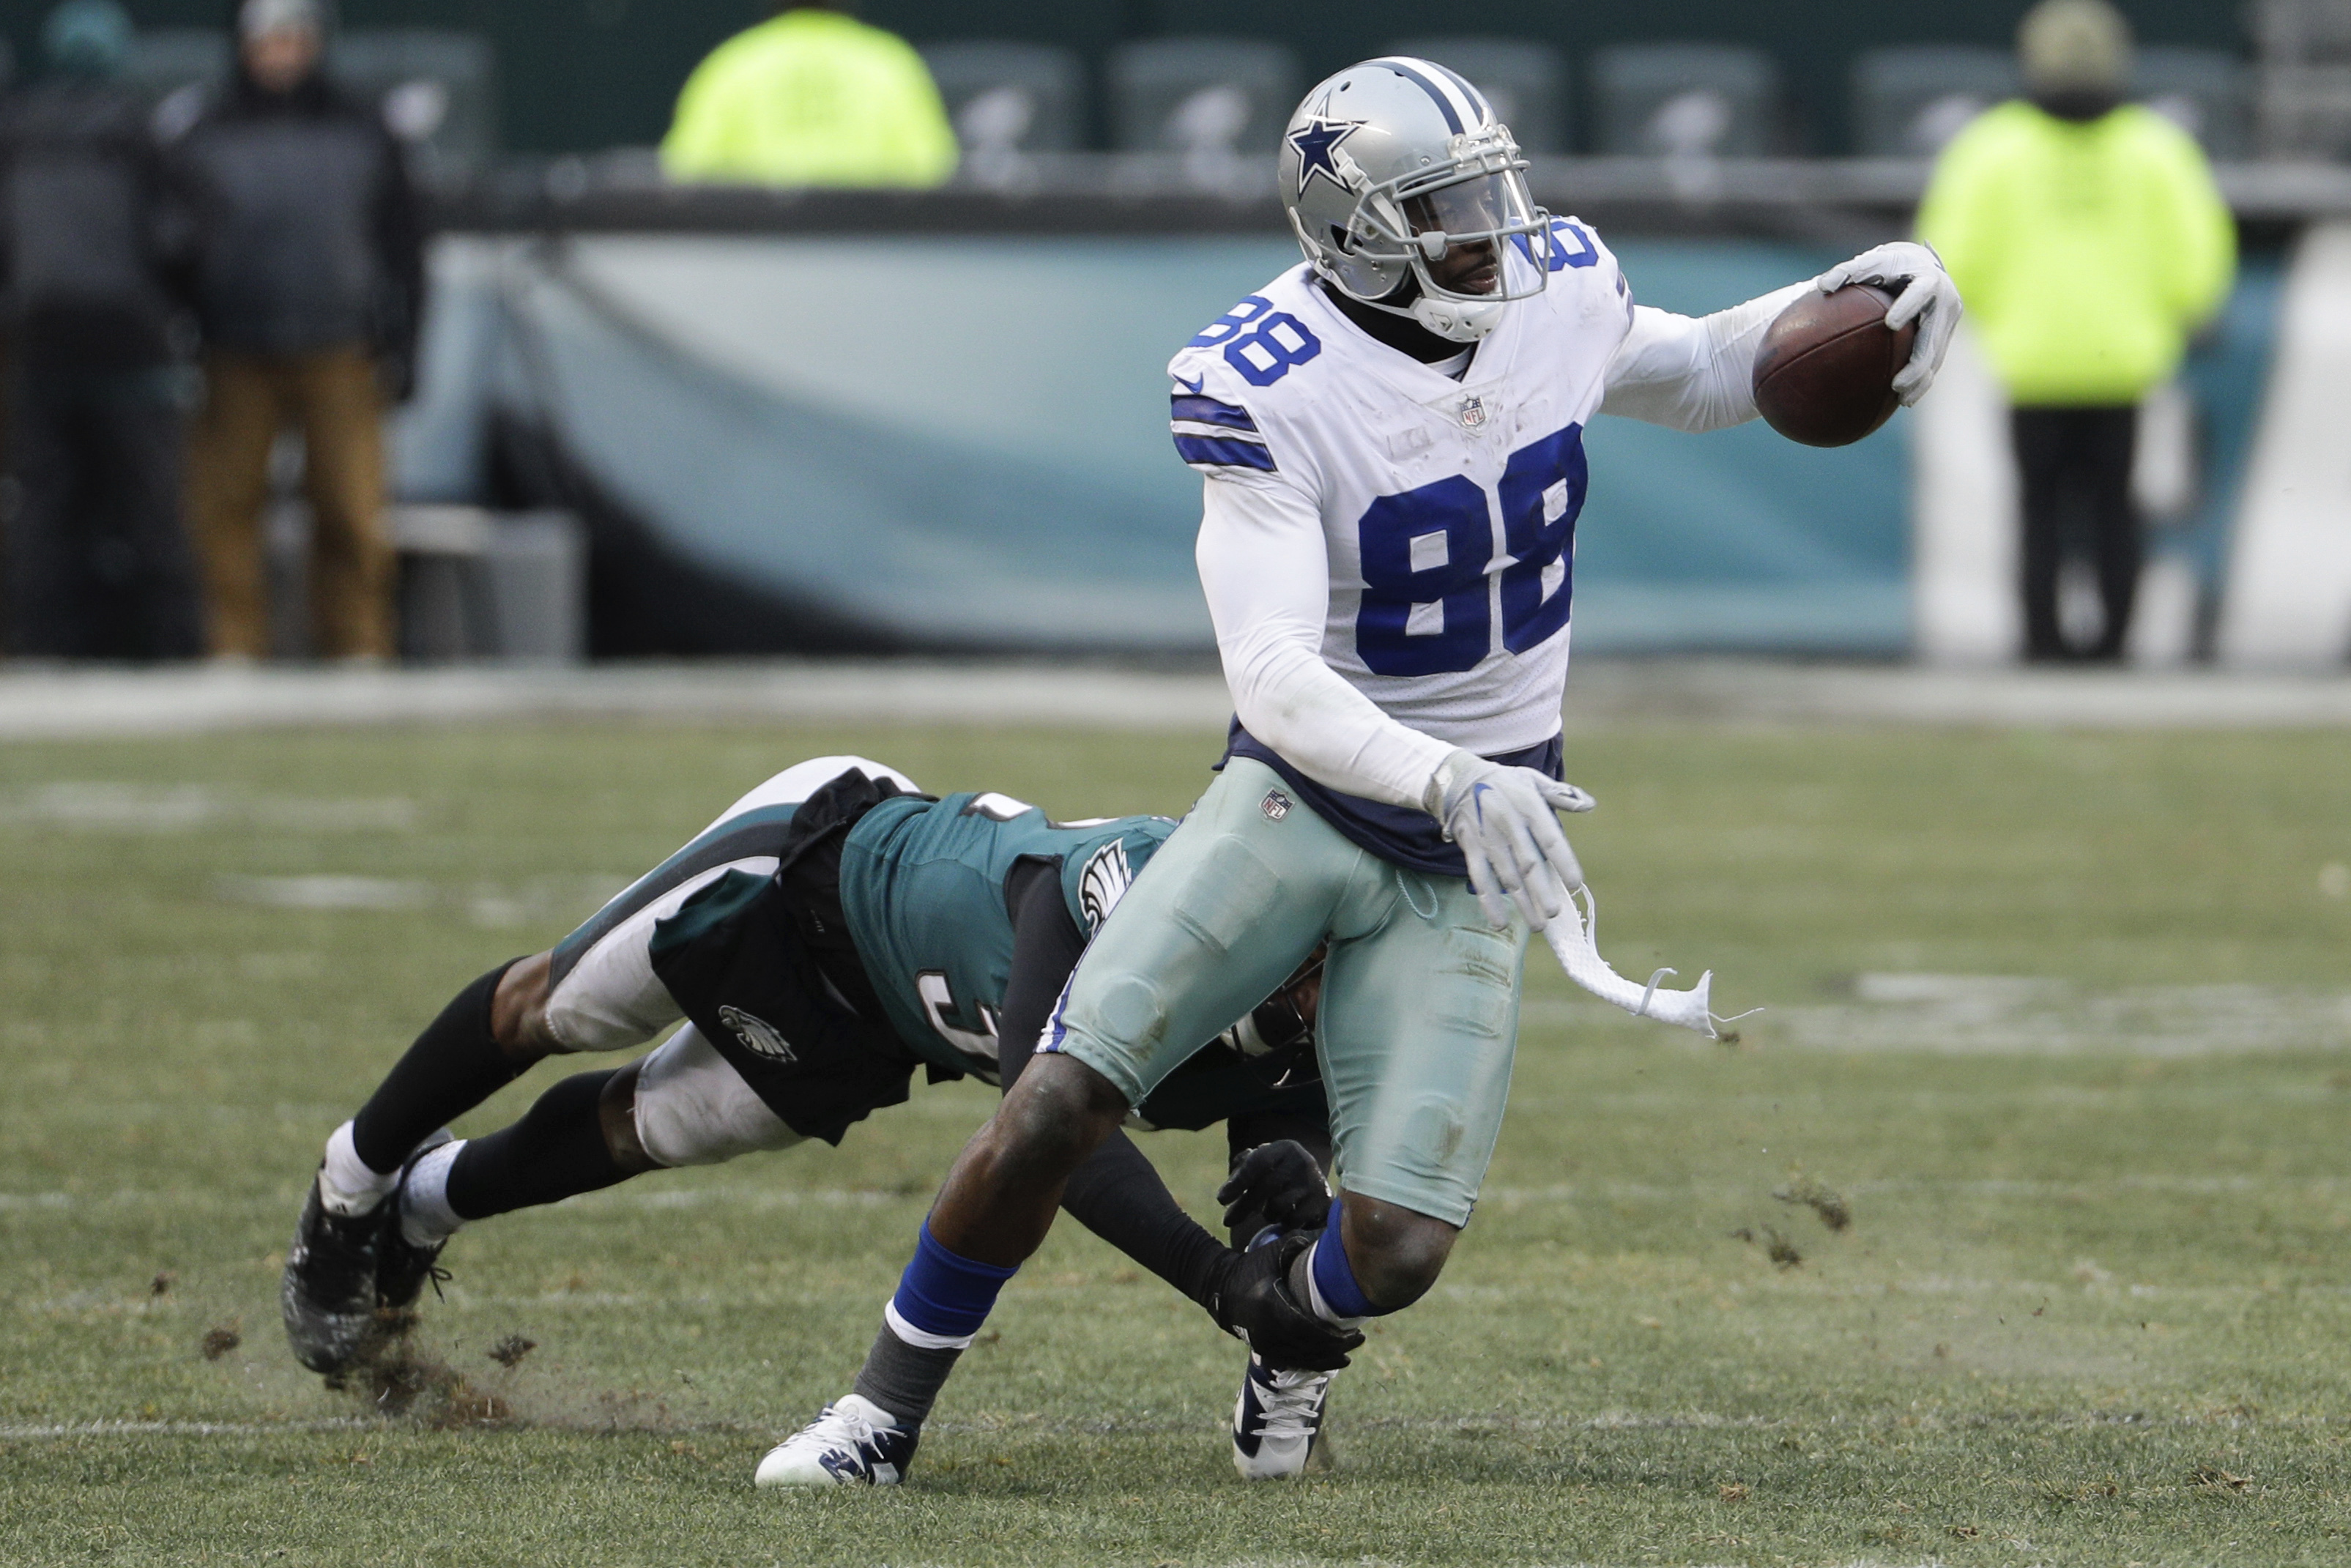 Cowboys Release Wide Receiver Dez Bryant The Boston Globe